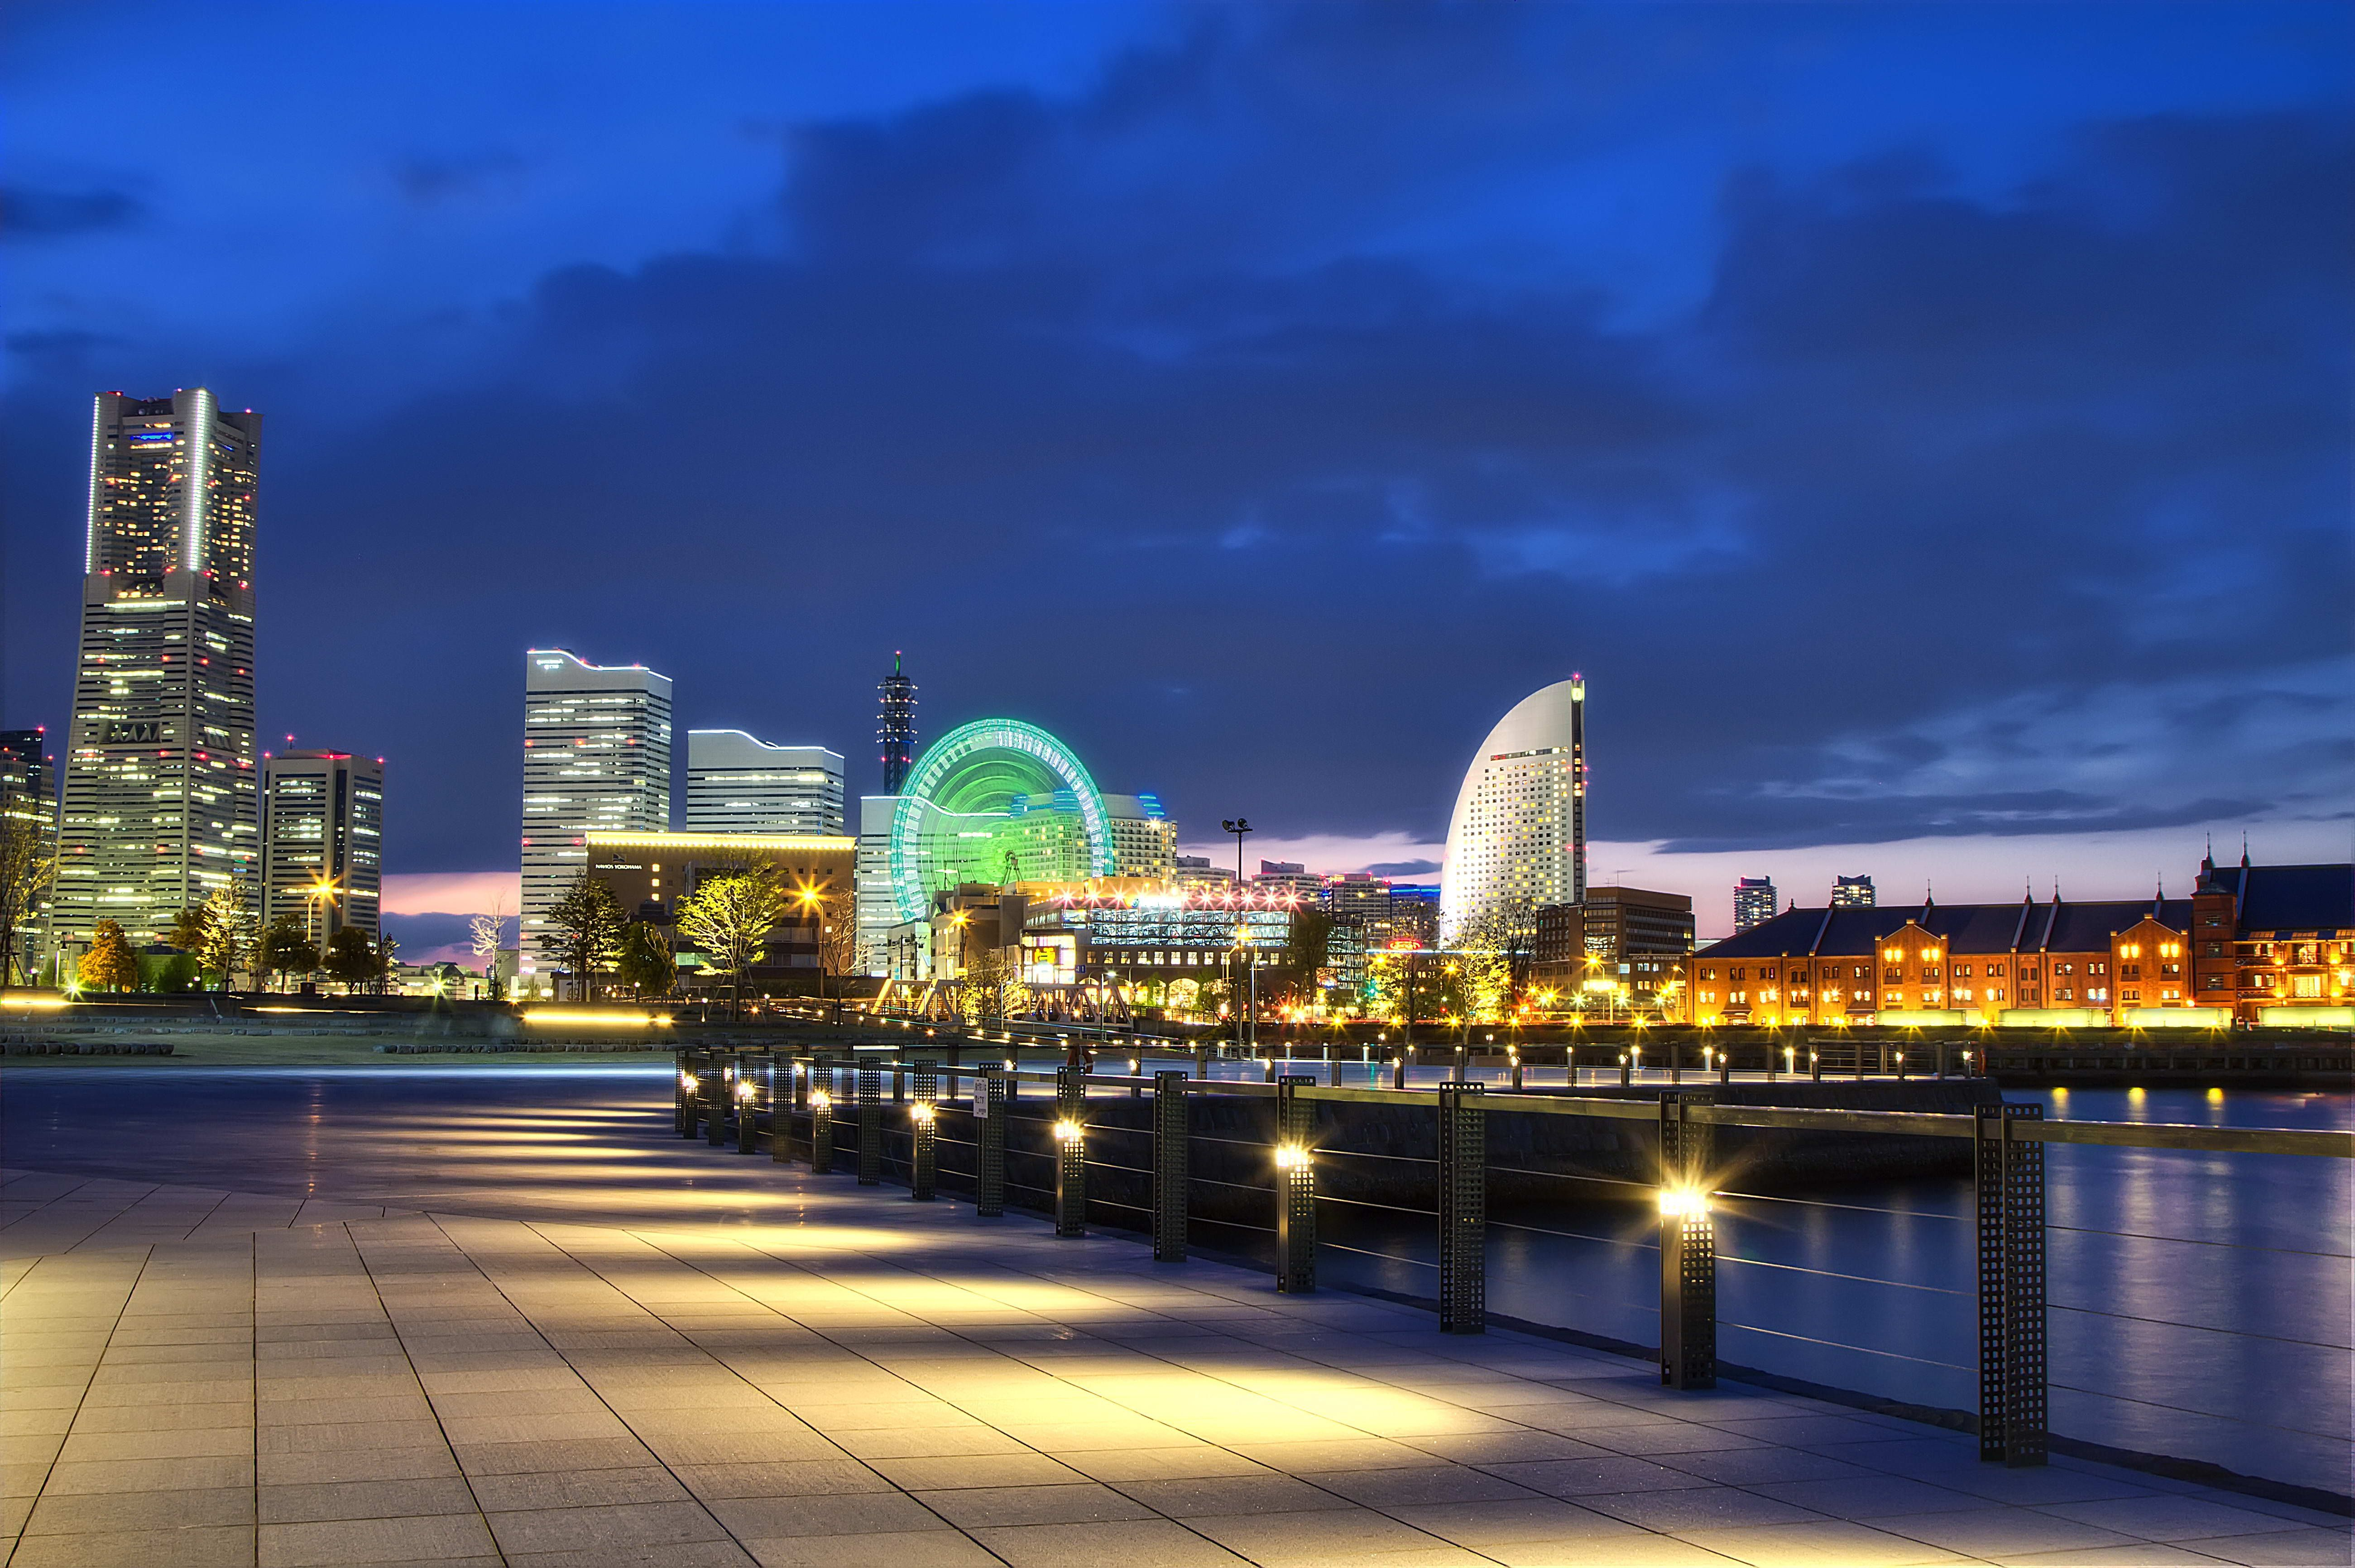 Japan, Night city, yokohama, night, wallpapers , Pc backgrounds, free photos - HD wallpaper desktop backgrounds